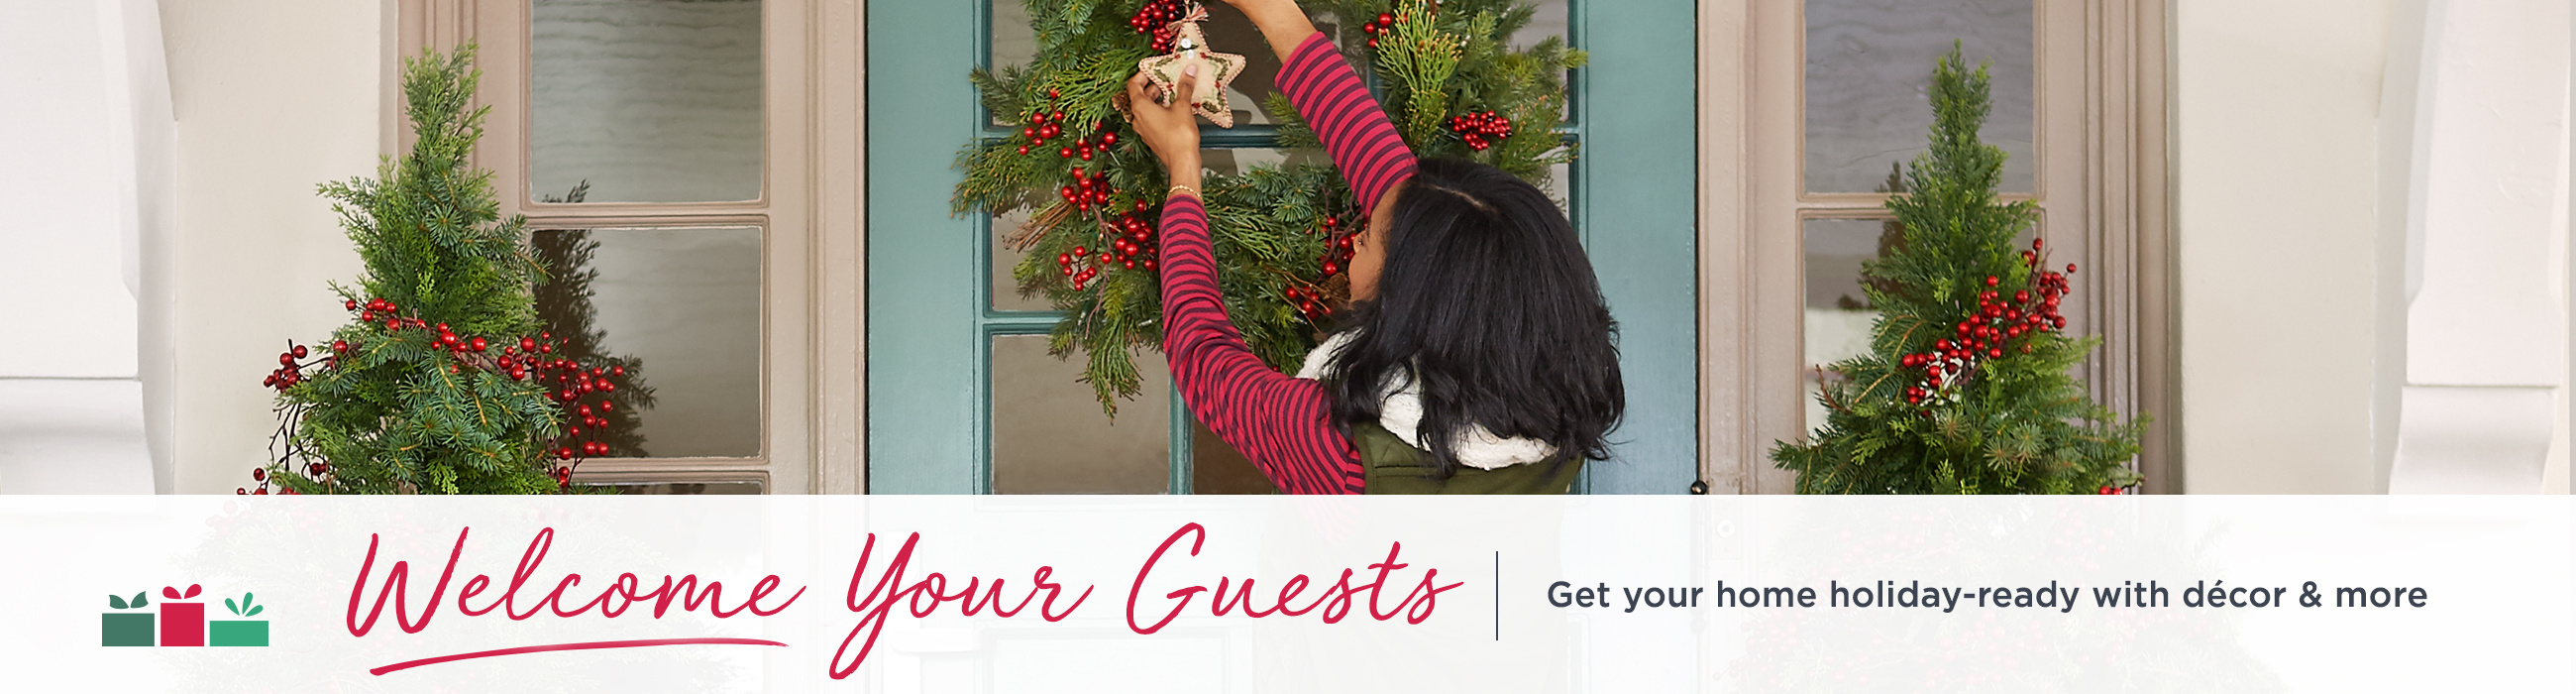 Welcome Your Guests - Get your home holiday-ready with décor & more